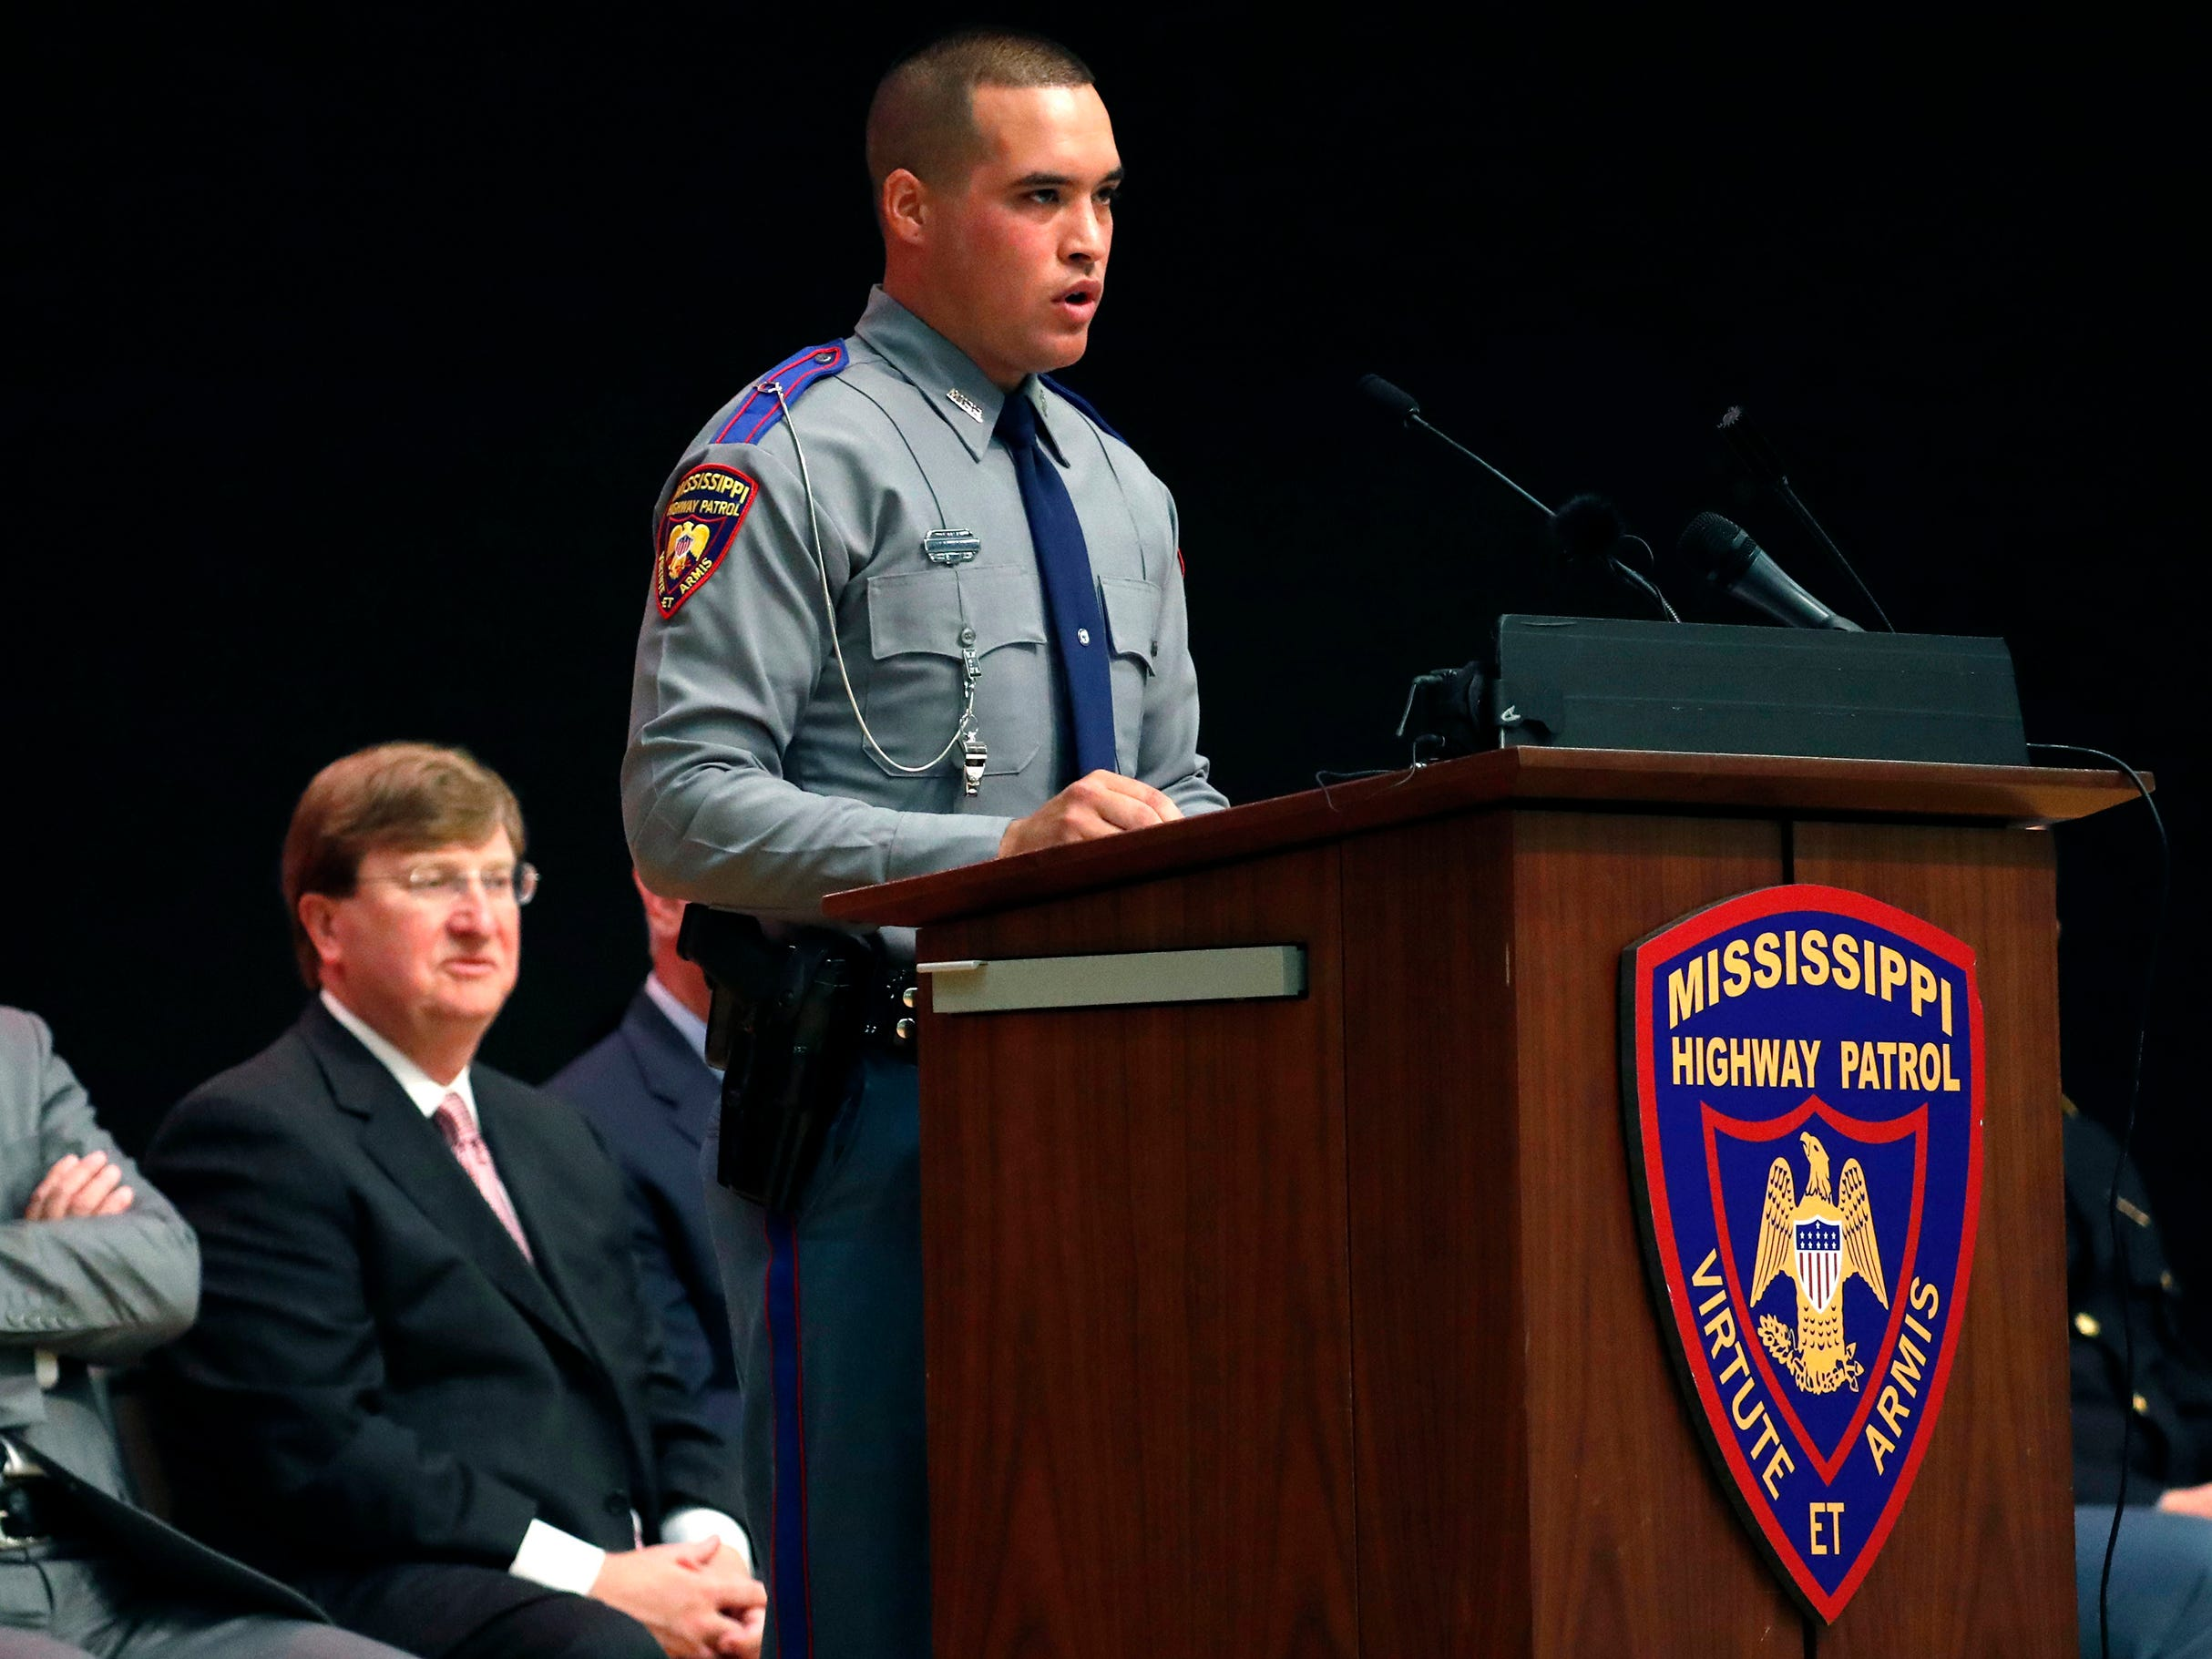 Gov. Phil Bryant, left, and Lt. Gov. Tate Reeves, second from left, listen as Cadet Landon Orozco, Class 63 president, delivers a class response following the governor's address, during the Mississippi Highway Patrol cadets' graduation ceremony, Wednesday, May 1, 2019, at the Clyde Muse Center in Pearl, Miss. The patrol's training lasts 22 weeks and involves classroom instruction, physical fitness, firearms and emergency operations training as well as a variety of police science courses. The state's newest 44 troopers include 4 women.